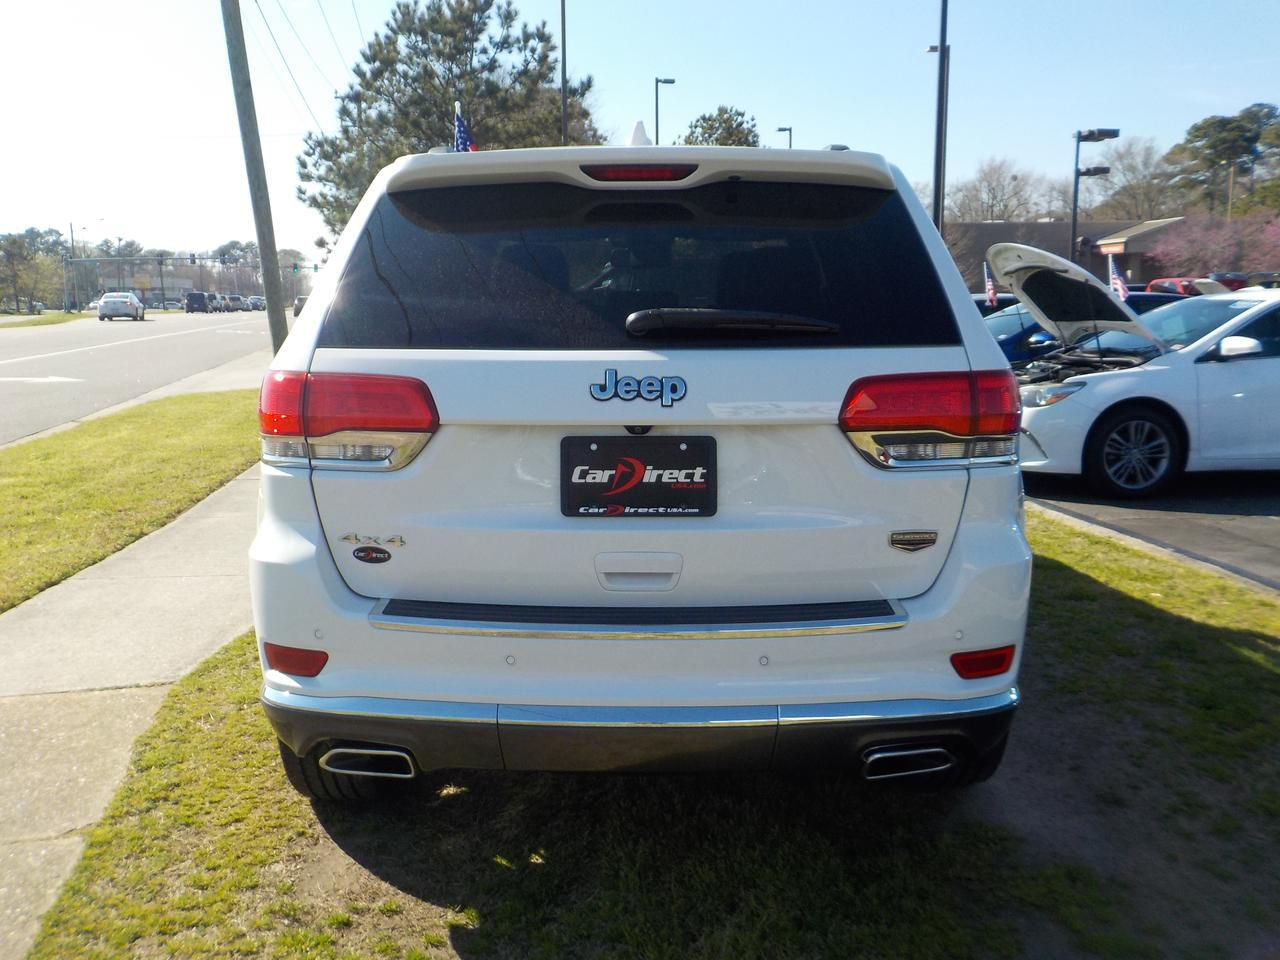 2014 JEEP GRAND CHEROKEE SUMMIT 4X4, WARRANTY, REMOTE START, BACKUP CAMERA, HEATED & COOLED SEATING, PANO ROOF, ROOF RACKS! Virginia Beach VA